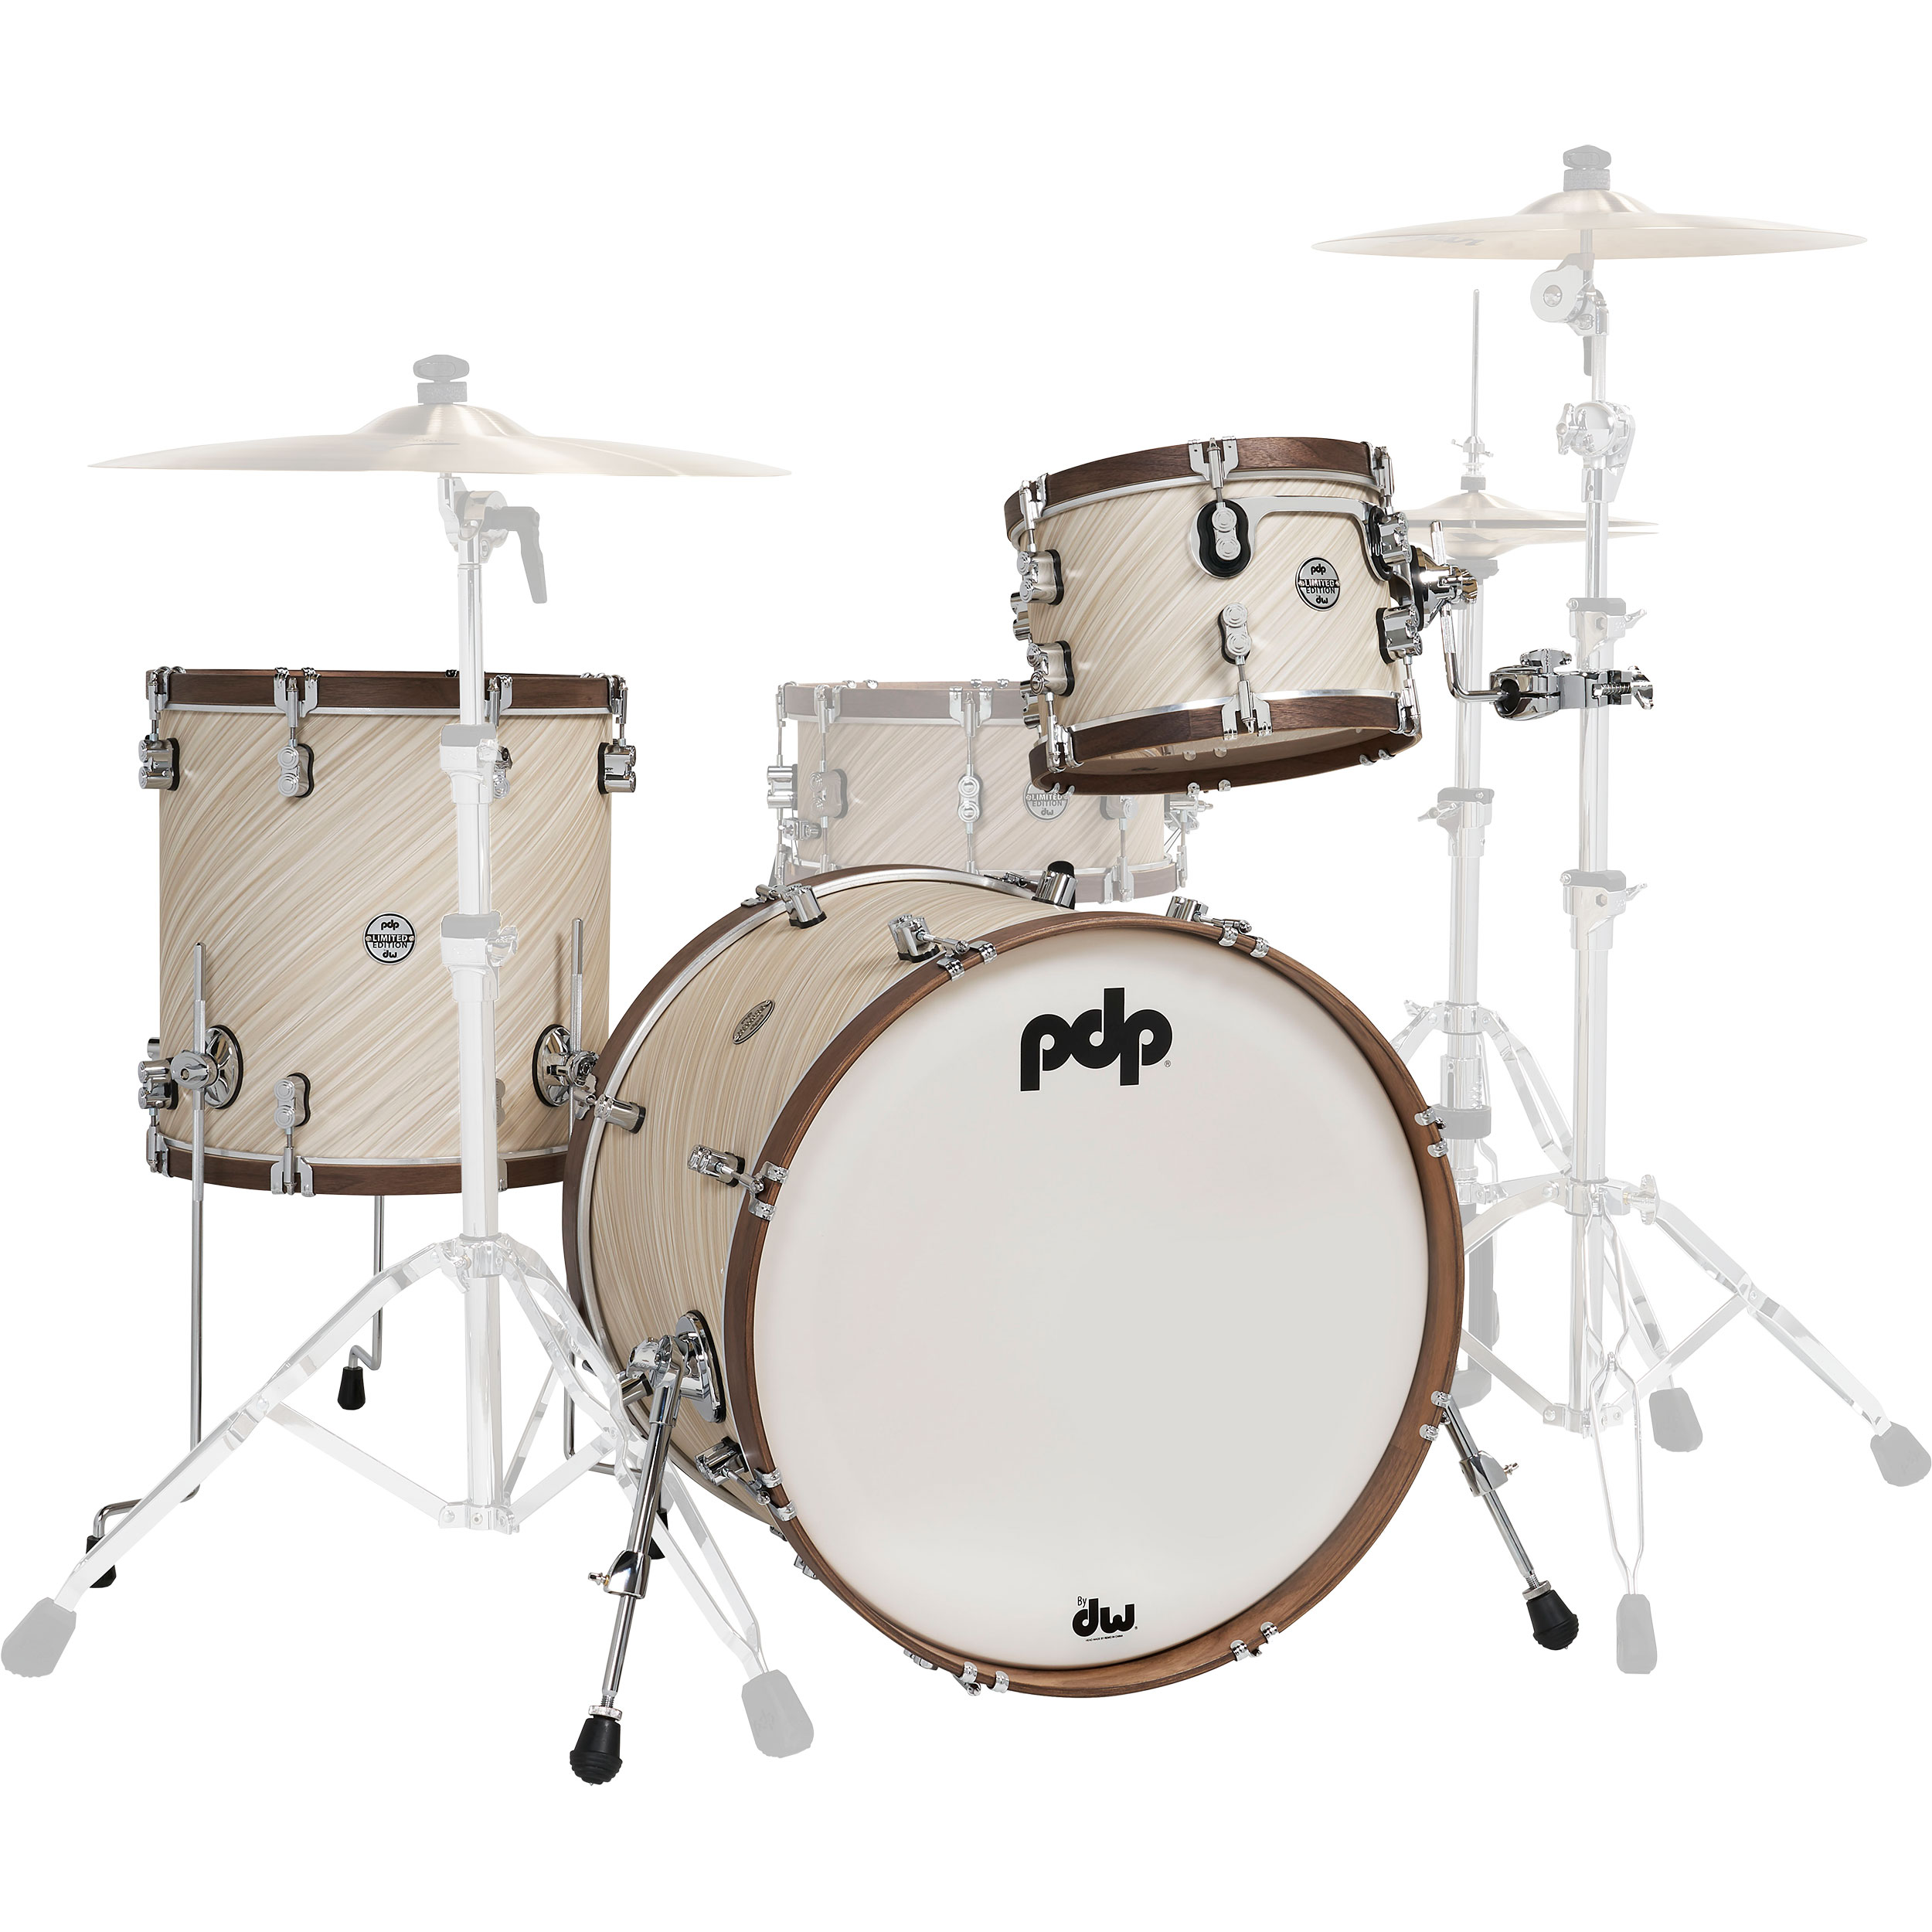 "PDP Limited Edition 3-Piece Drum Set Shell Pack (22"" Bass, 12/16"" Toms) in Twisted Ivory with Walnut Hoops"